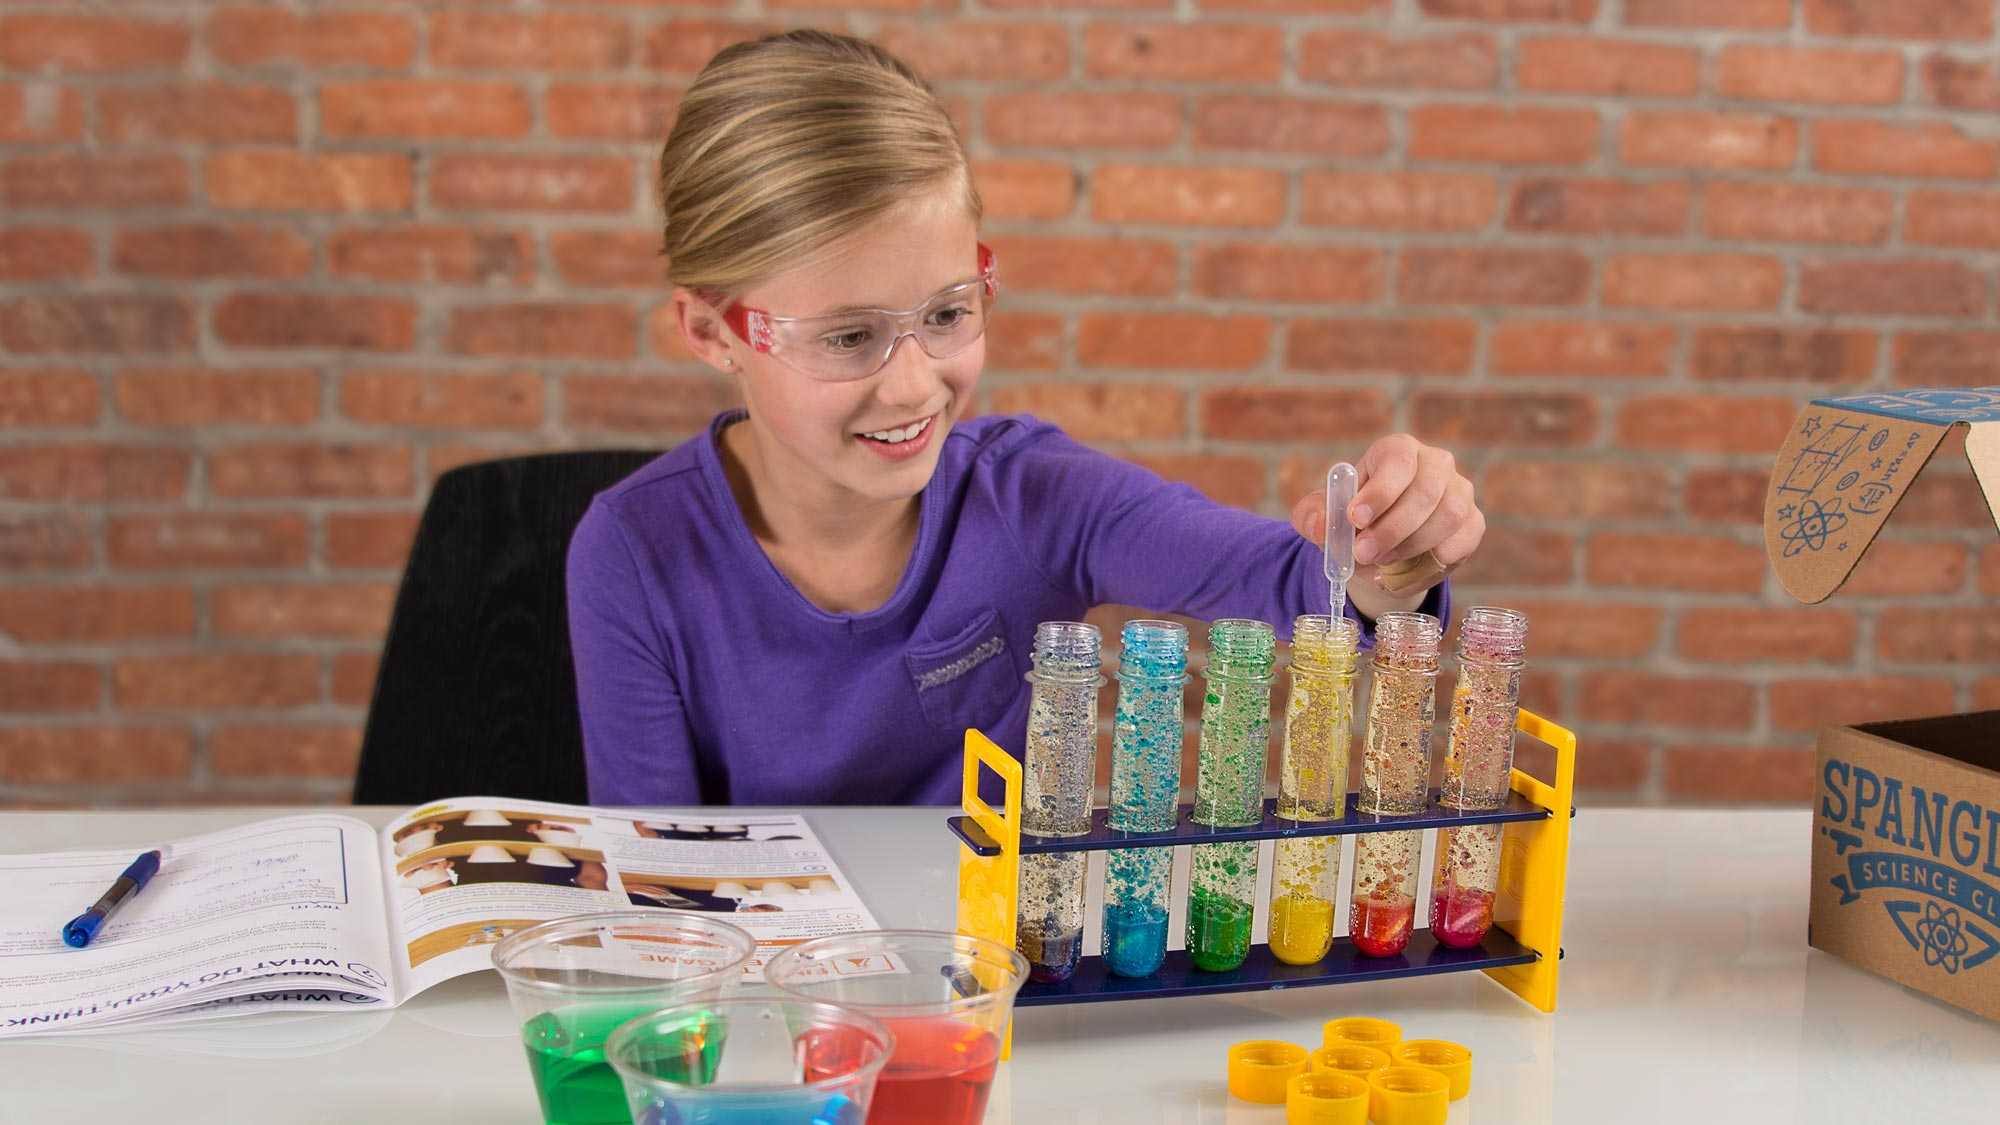 Prevent Summer Learning Loss   Spangler Science Club